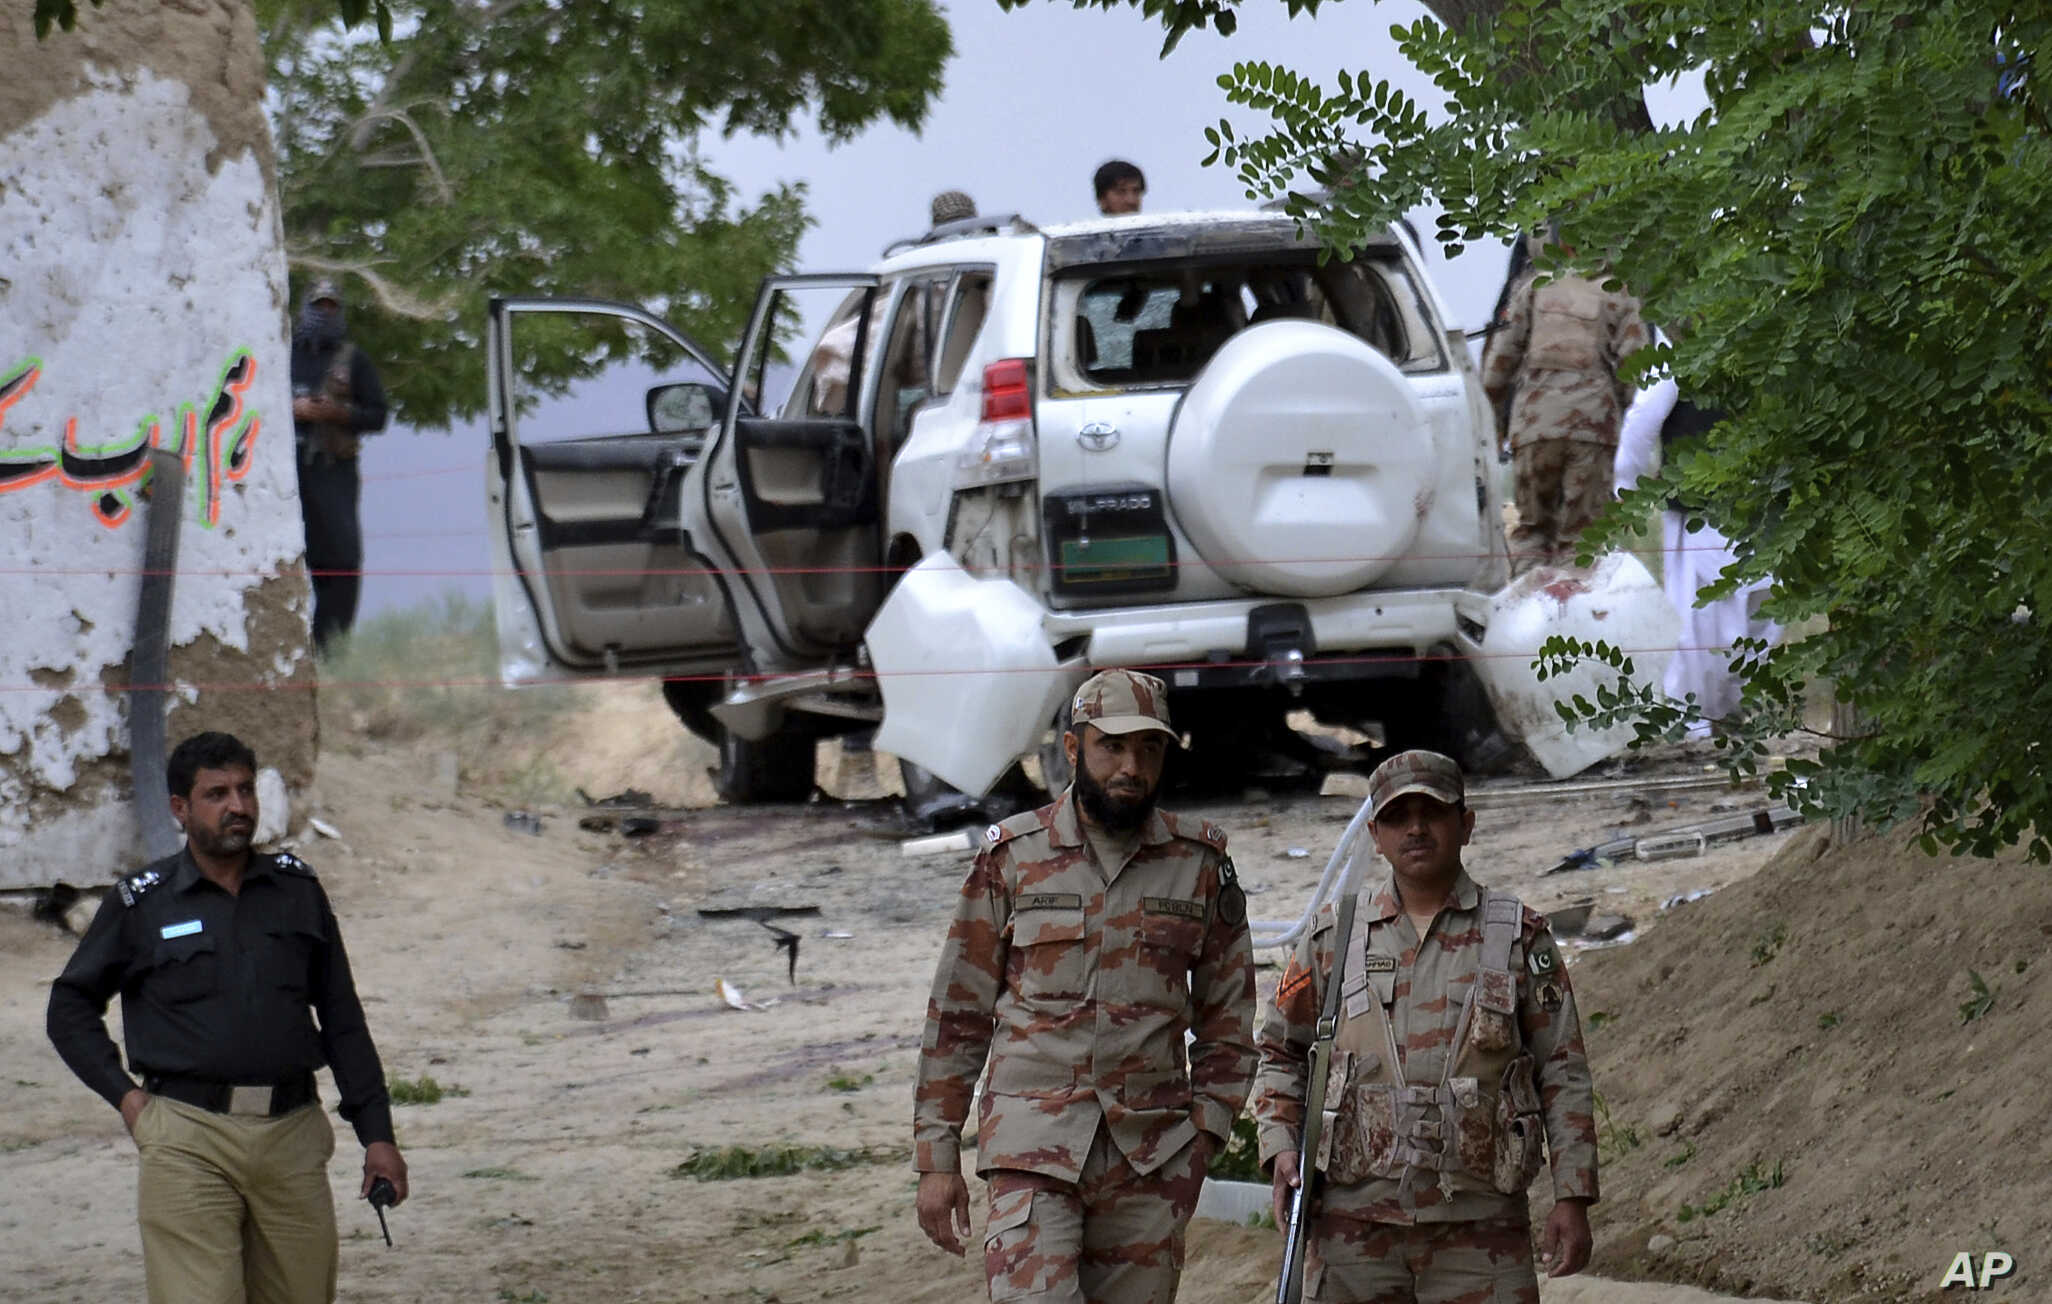 Several Soldiers Killed in Southwestern Pakistan Suicide Bombing